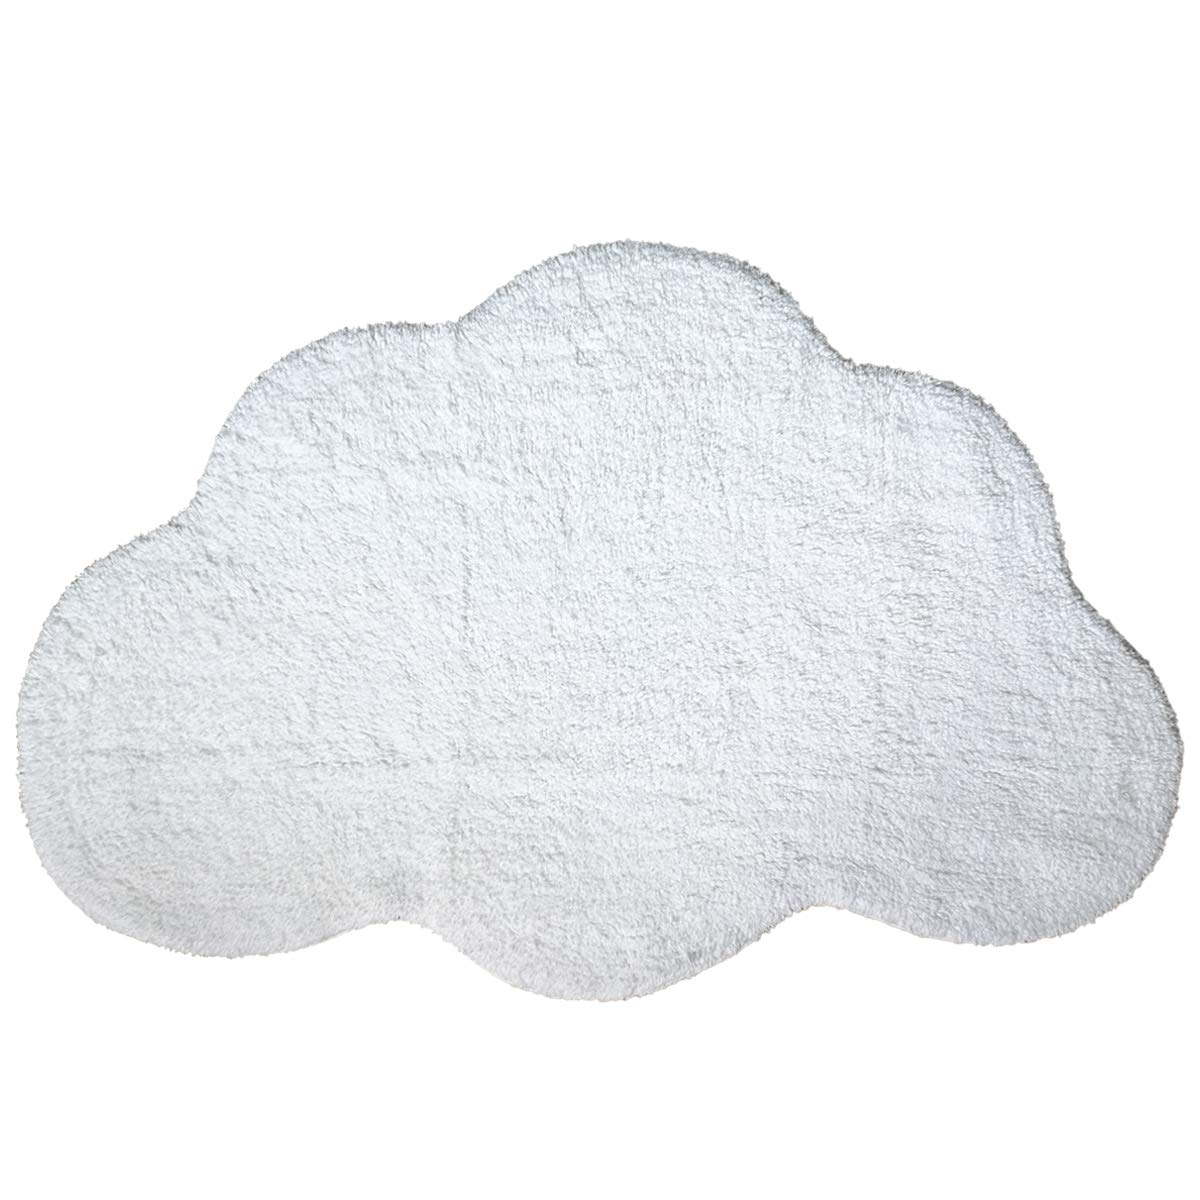 Habudda Cloud Shape Area Rugs for Kids Room Warm Soft 100% Cotton Luxury Plush Handmade Knitted Nursery Decoration Rugs Baby Crawling Rugs Carpet 100CM65CM (White)